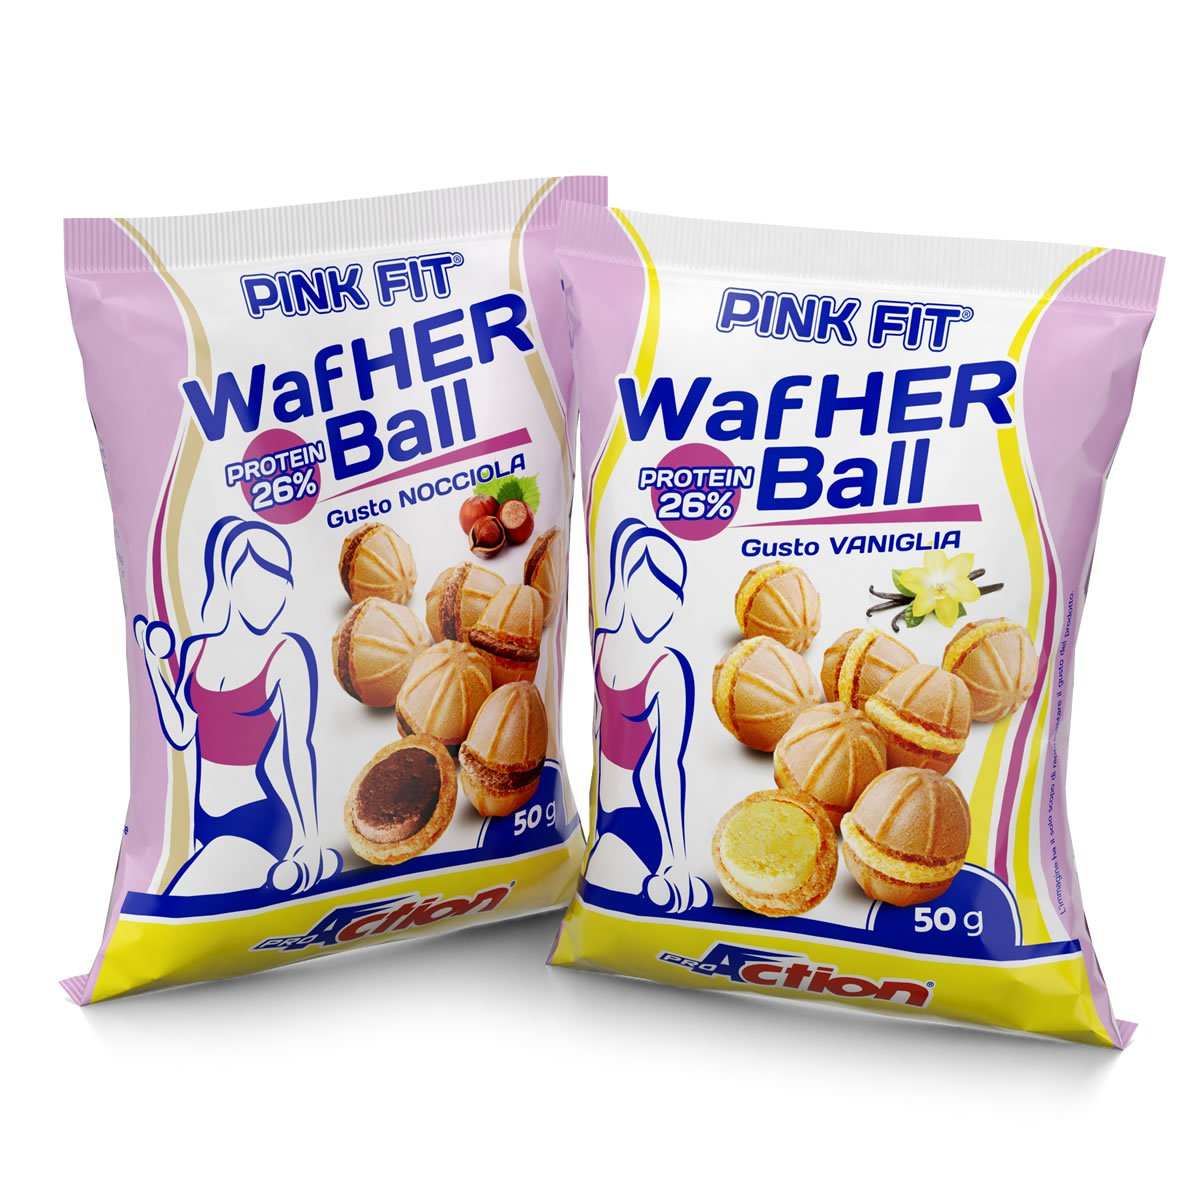 Pink Fit Wafher Ball